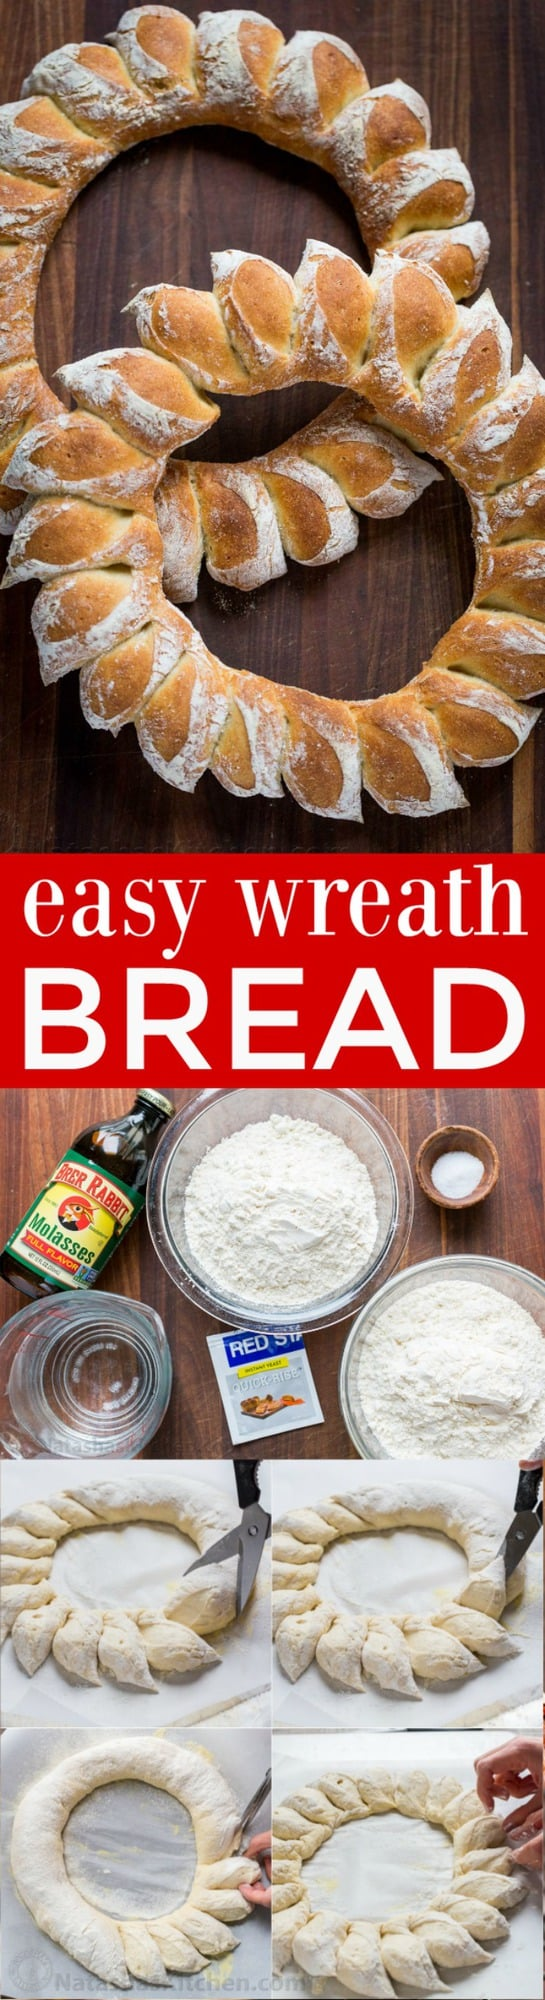 "How to Make a Wreath Bread with DIY video! Wreath bread has a crisp crackly crust and super soft center. Surprisingly easy and impressive Christmas bread wreath! | natashaskitchen.com"" width="